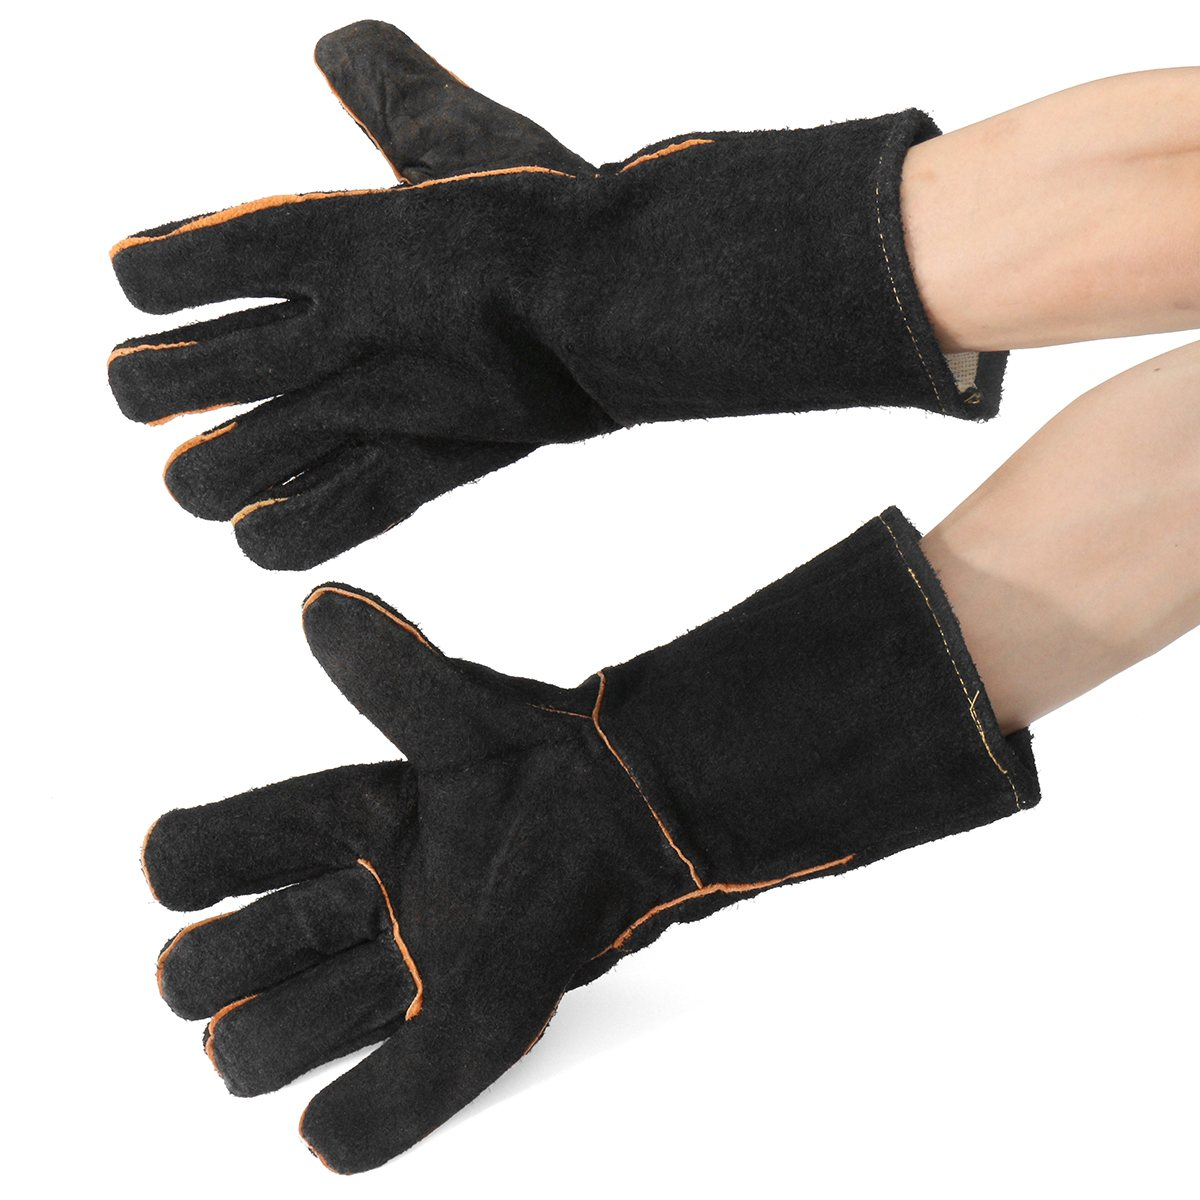 NEW 32cm XL Heavy Duty Welding Gloves Stoves PU Leather Cowhide Protect Welder Hands Workplace Safety Glove drop shopping leather canvas abrasion safety working welder gloves mechanical working leather welding gloves